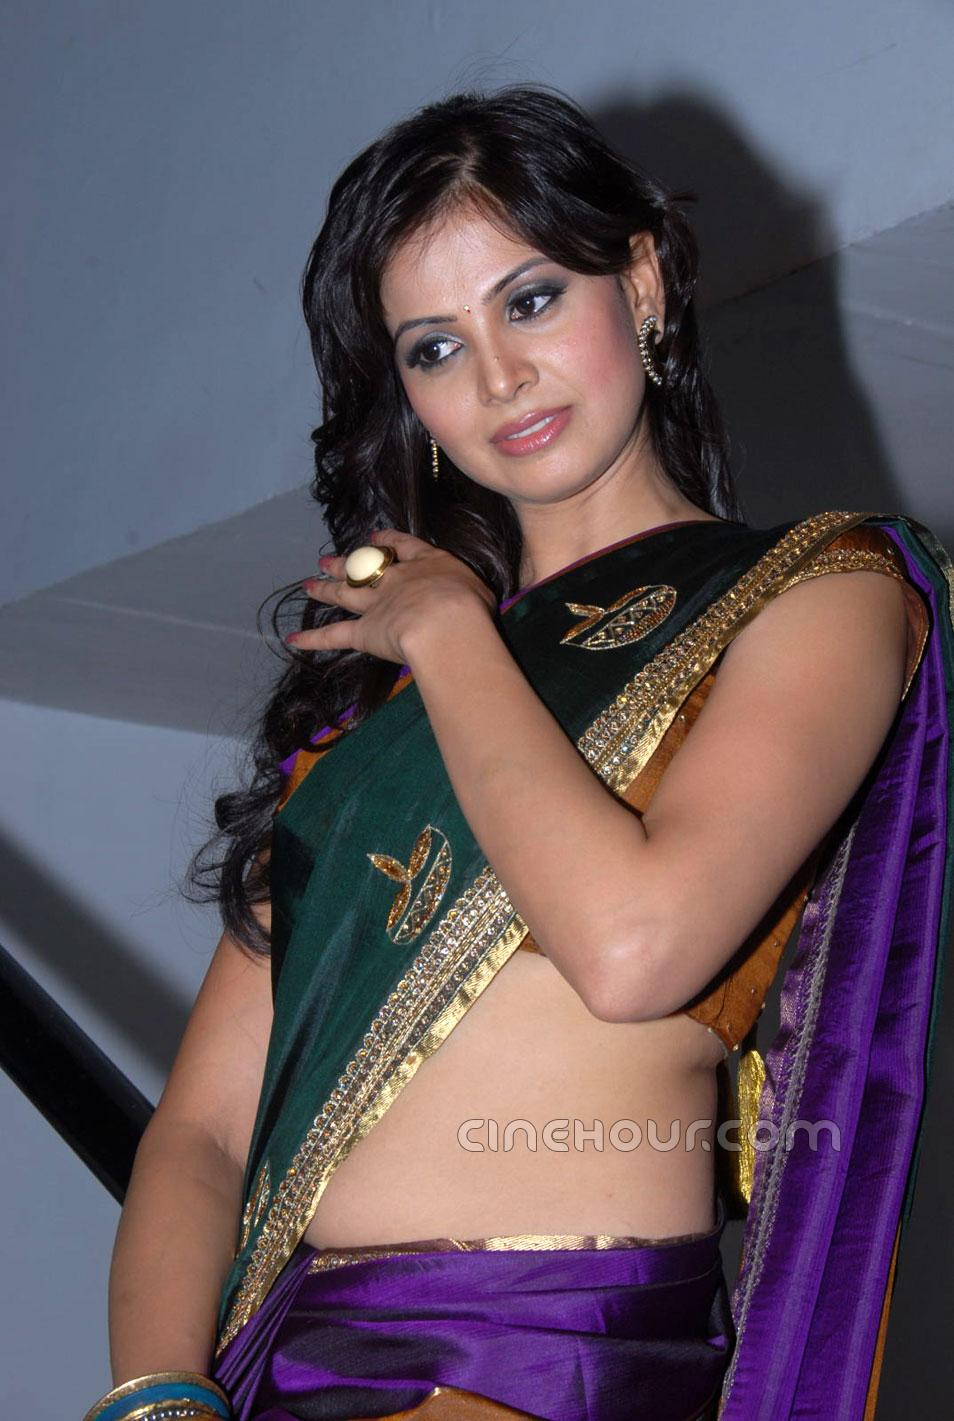 Supriya Shailja Hot in Saree1 - Supriya Shailja Hot Pics in Saree at Rushi Audio Launch